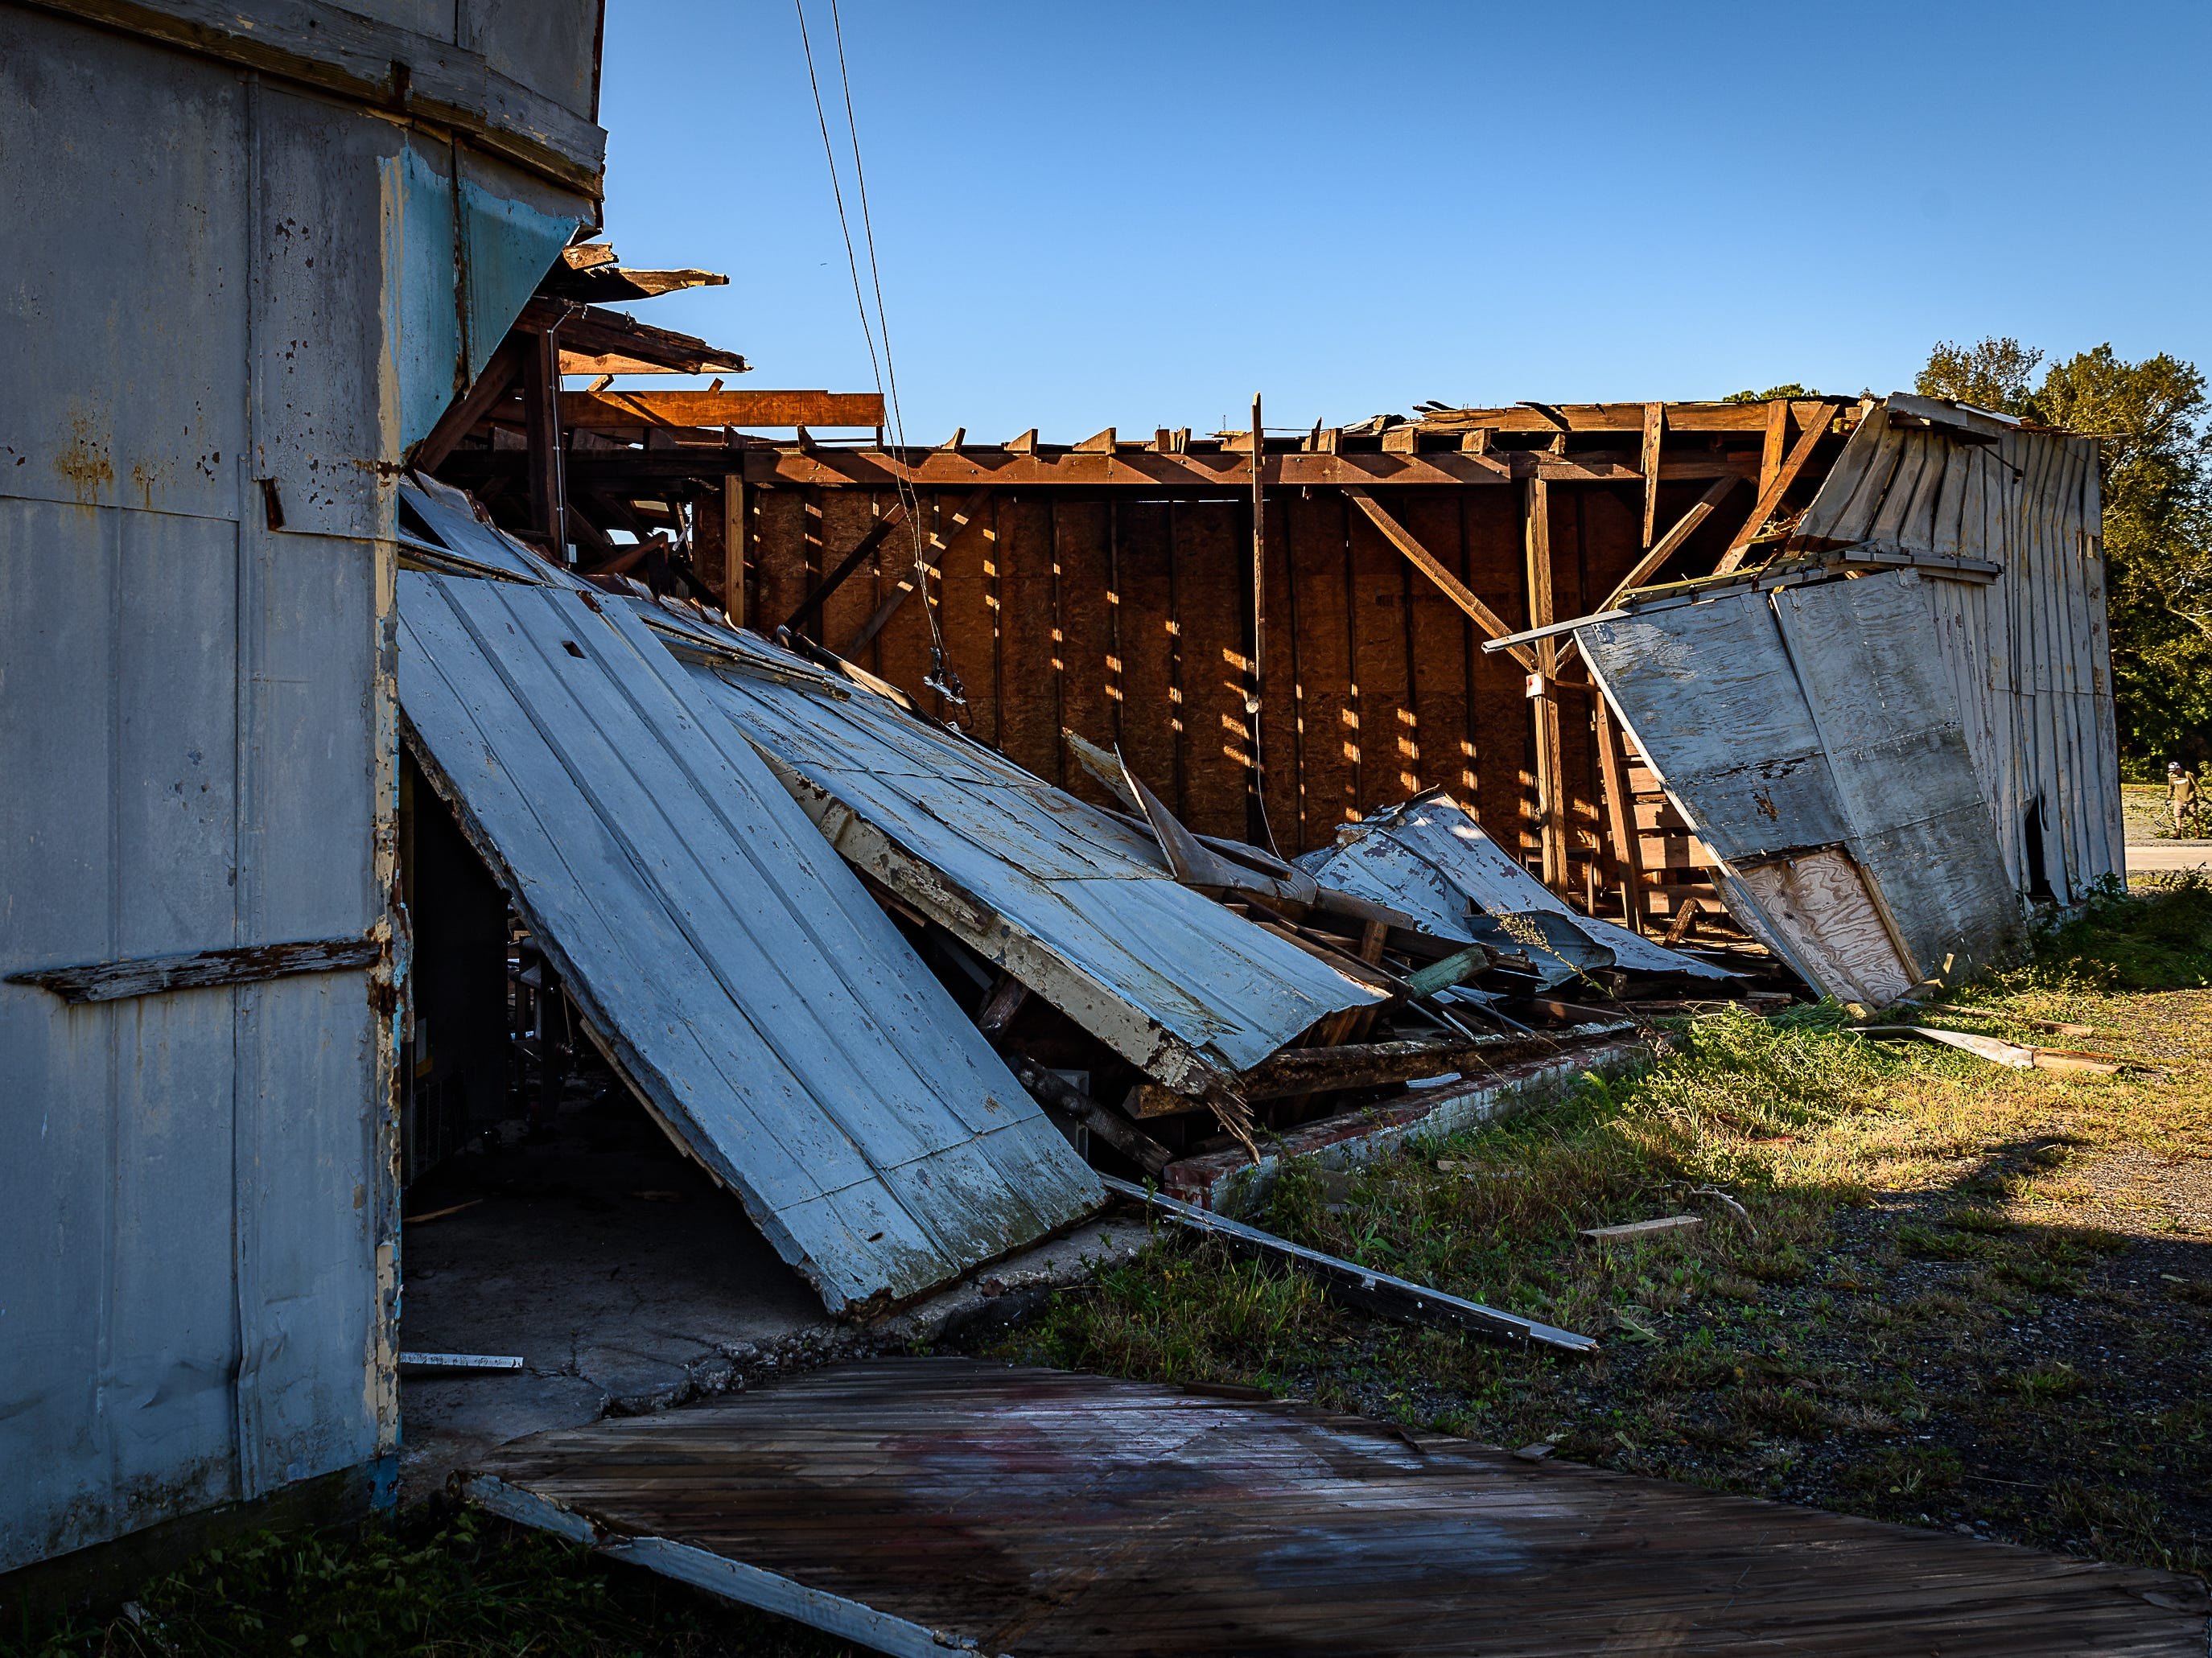 A building at The Cape Charles Brewing Company was almost totally destroyed during the storm on Oct. 12, 2018.